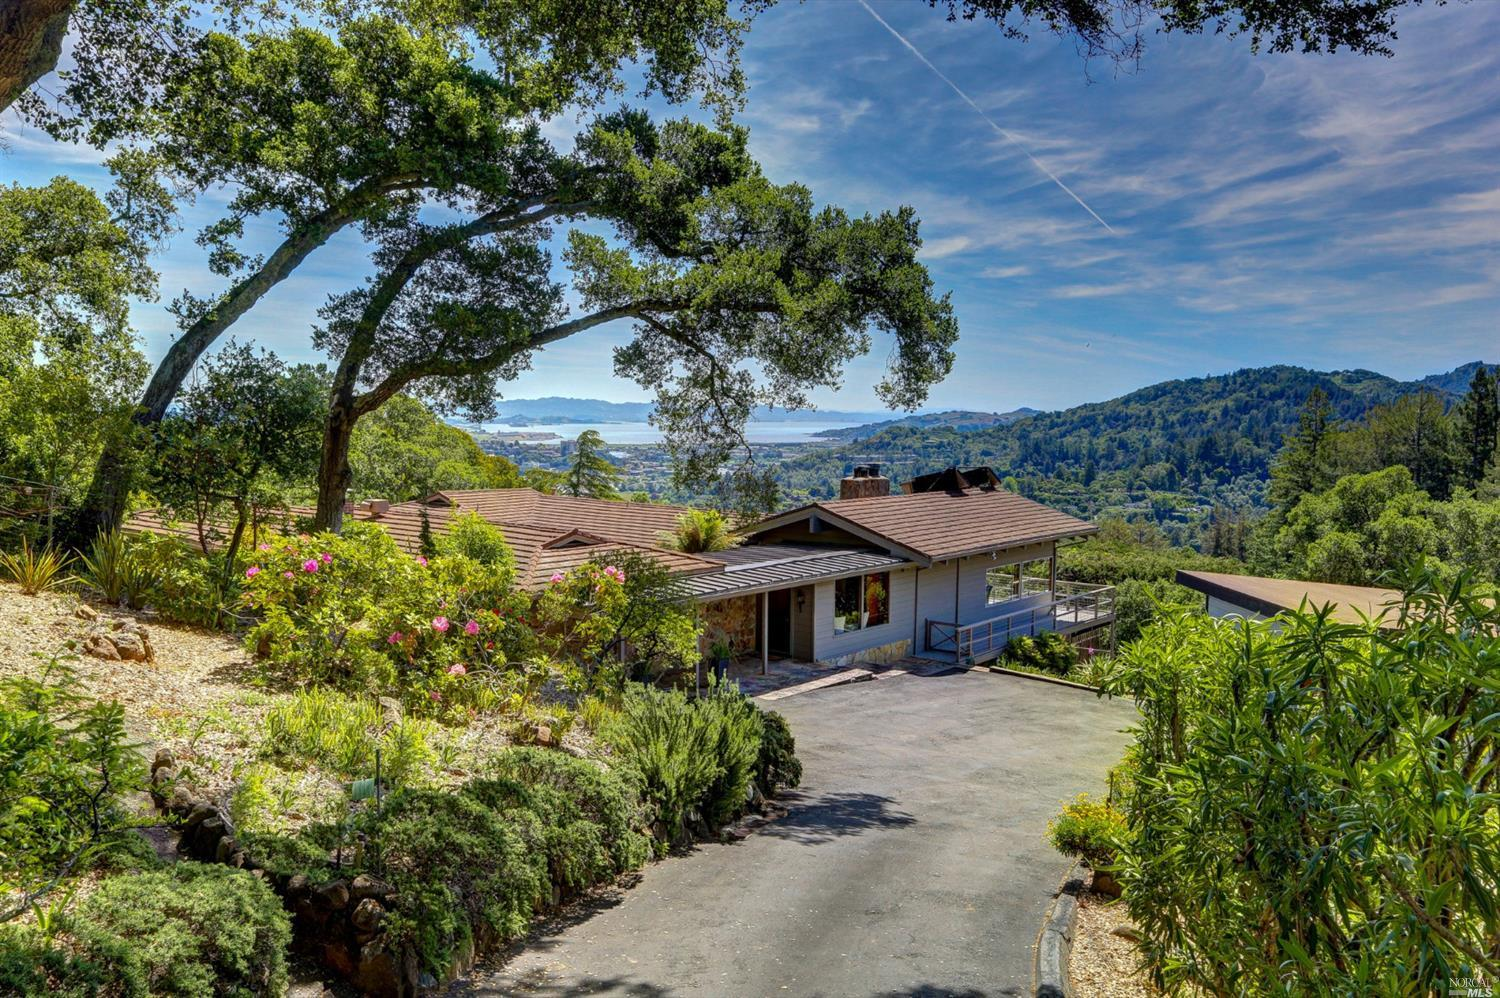 kentfield singles Search 12 single family homes for rent in kentfield, california find kentfield apartments, condos, townhomes, single family homes, and much more on trulia.